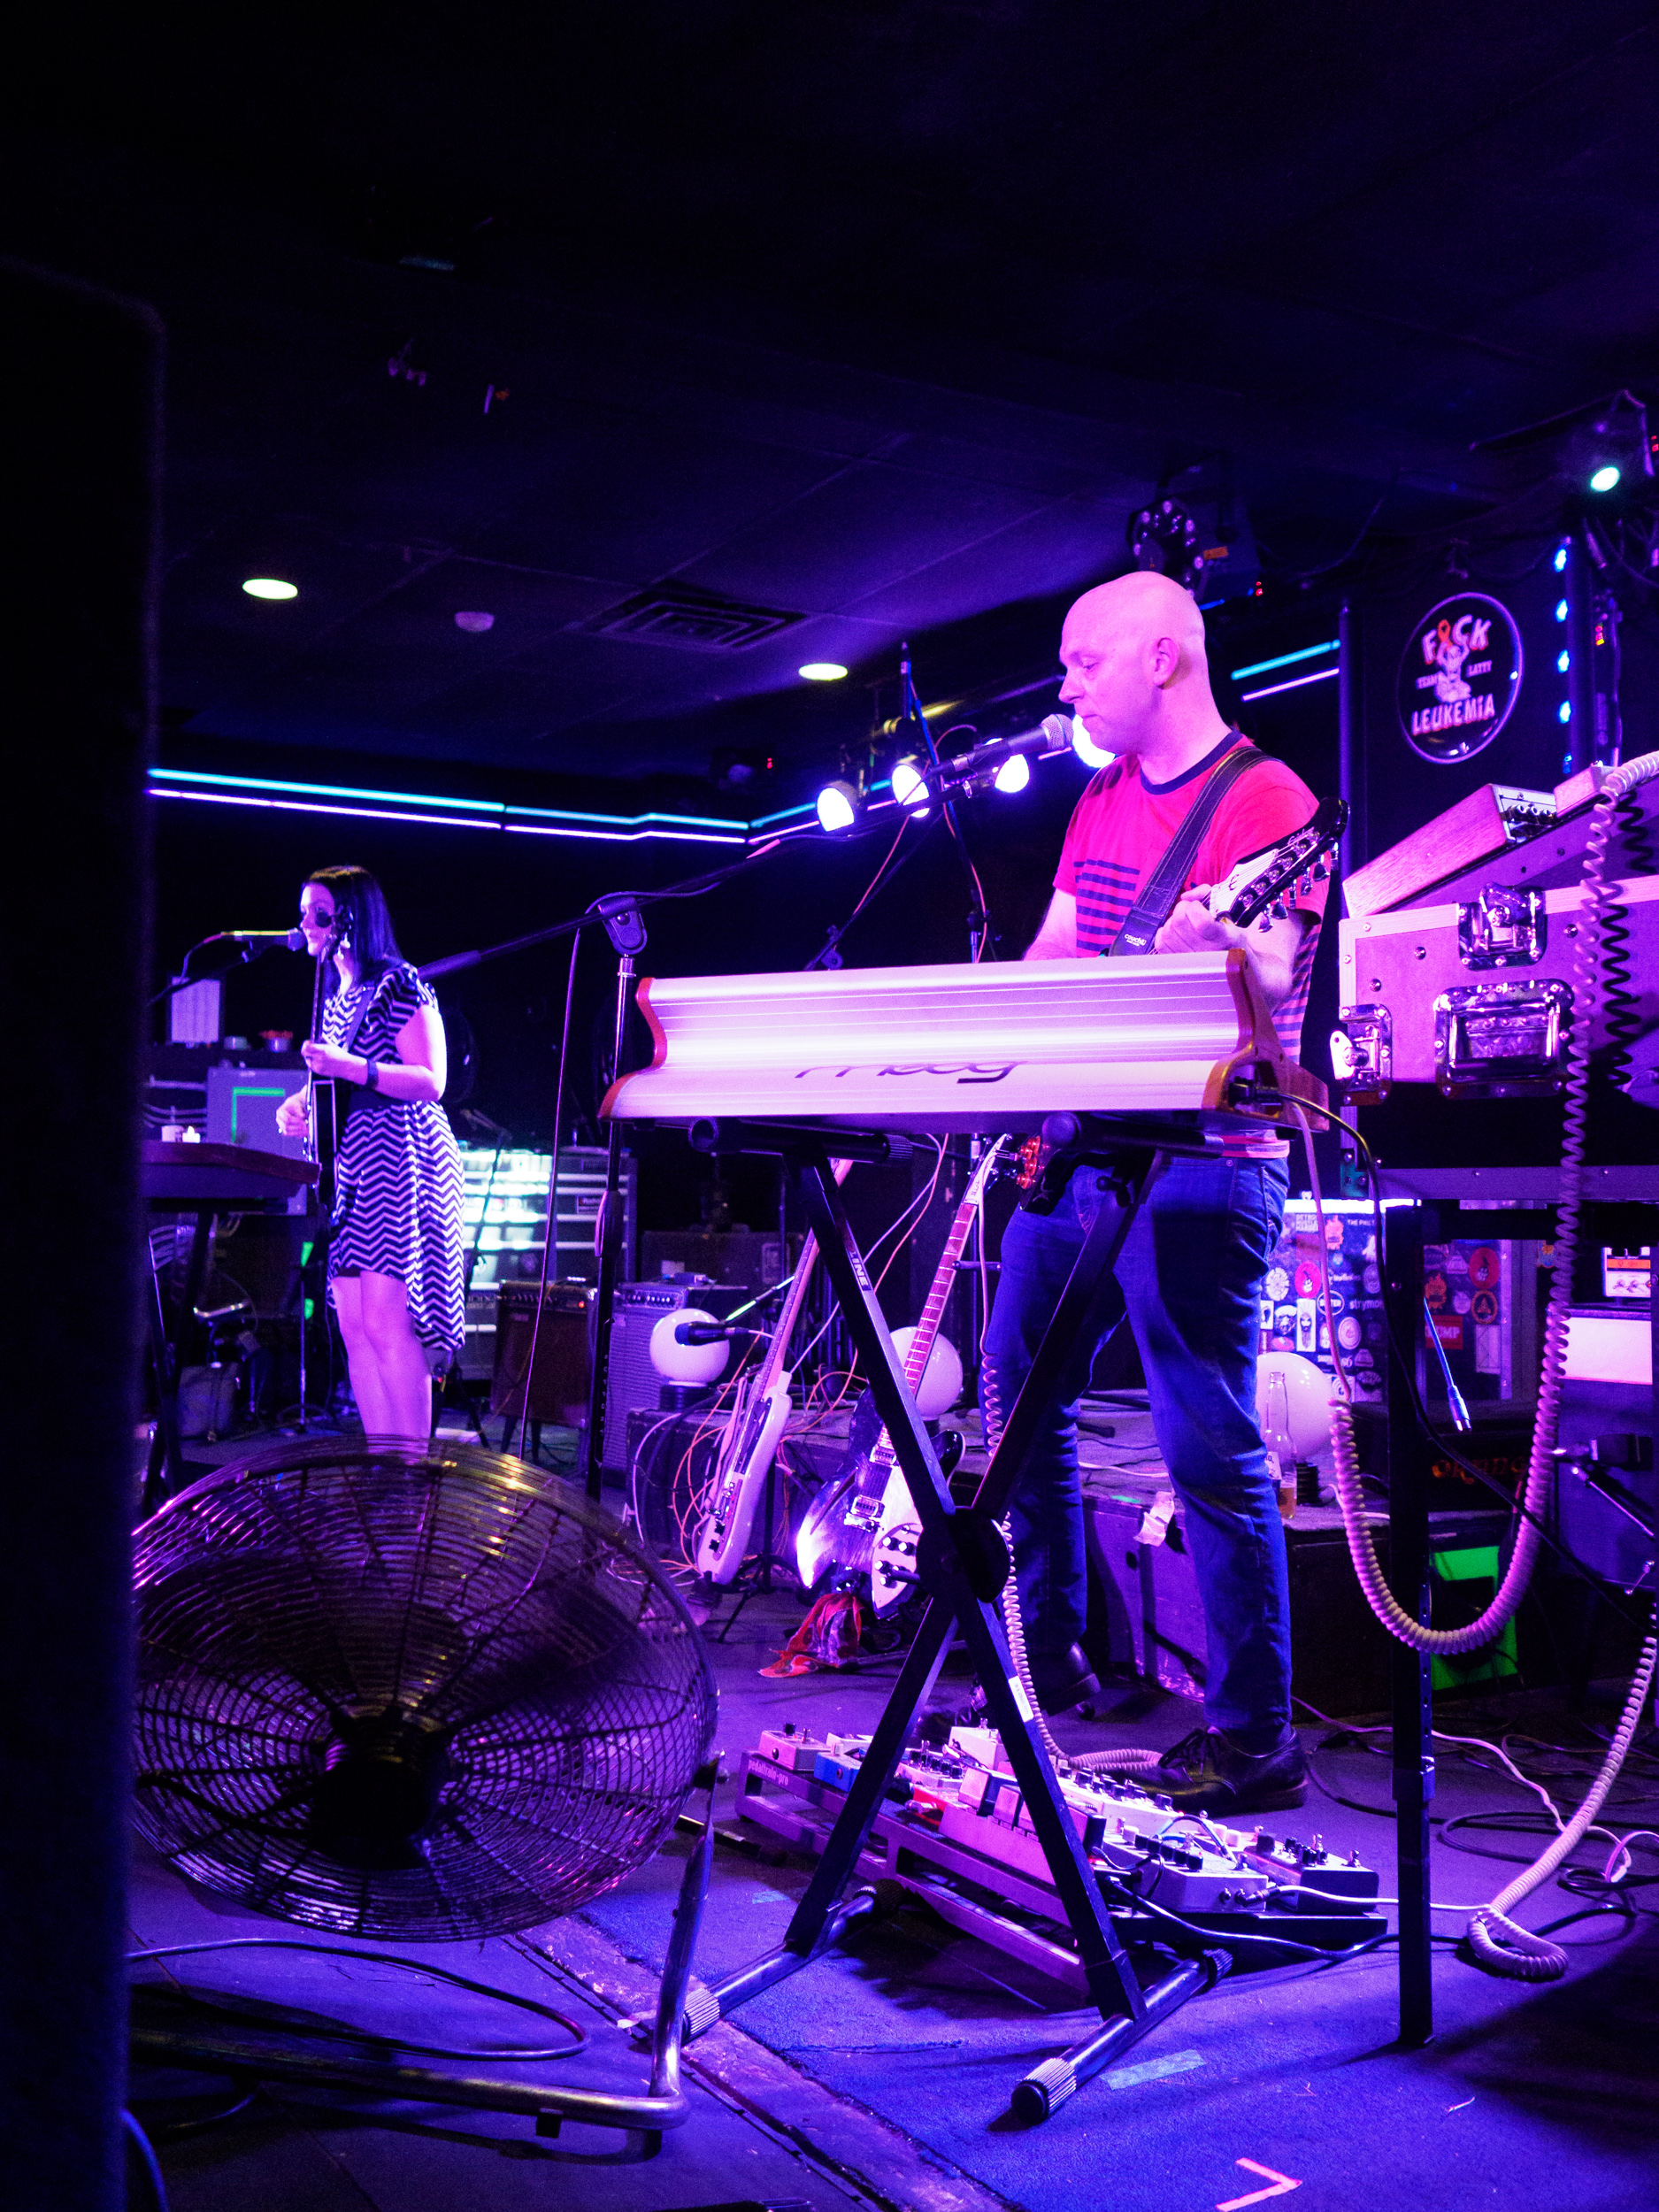 17-06-10_Concert_at_the_Foundry_6100215.JPG